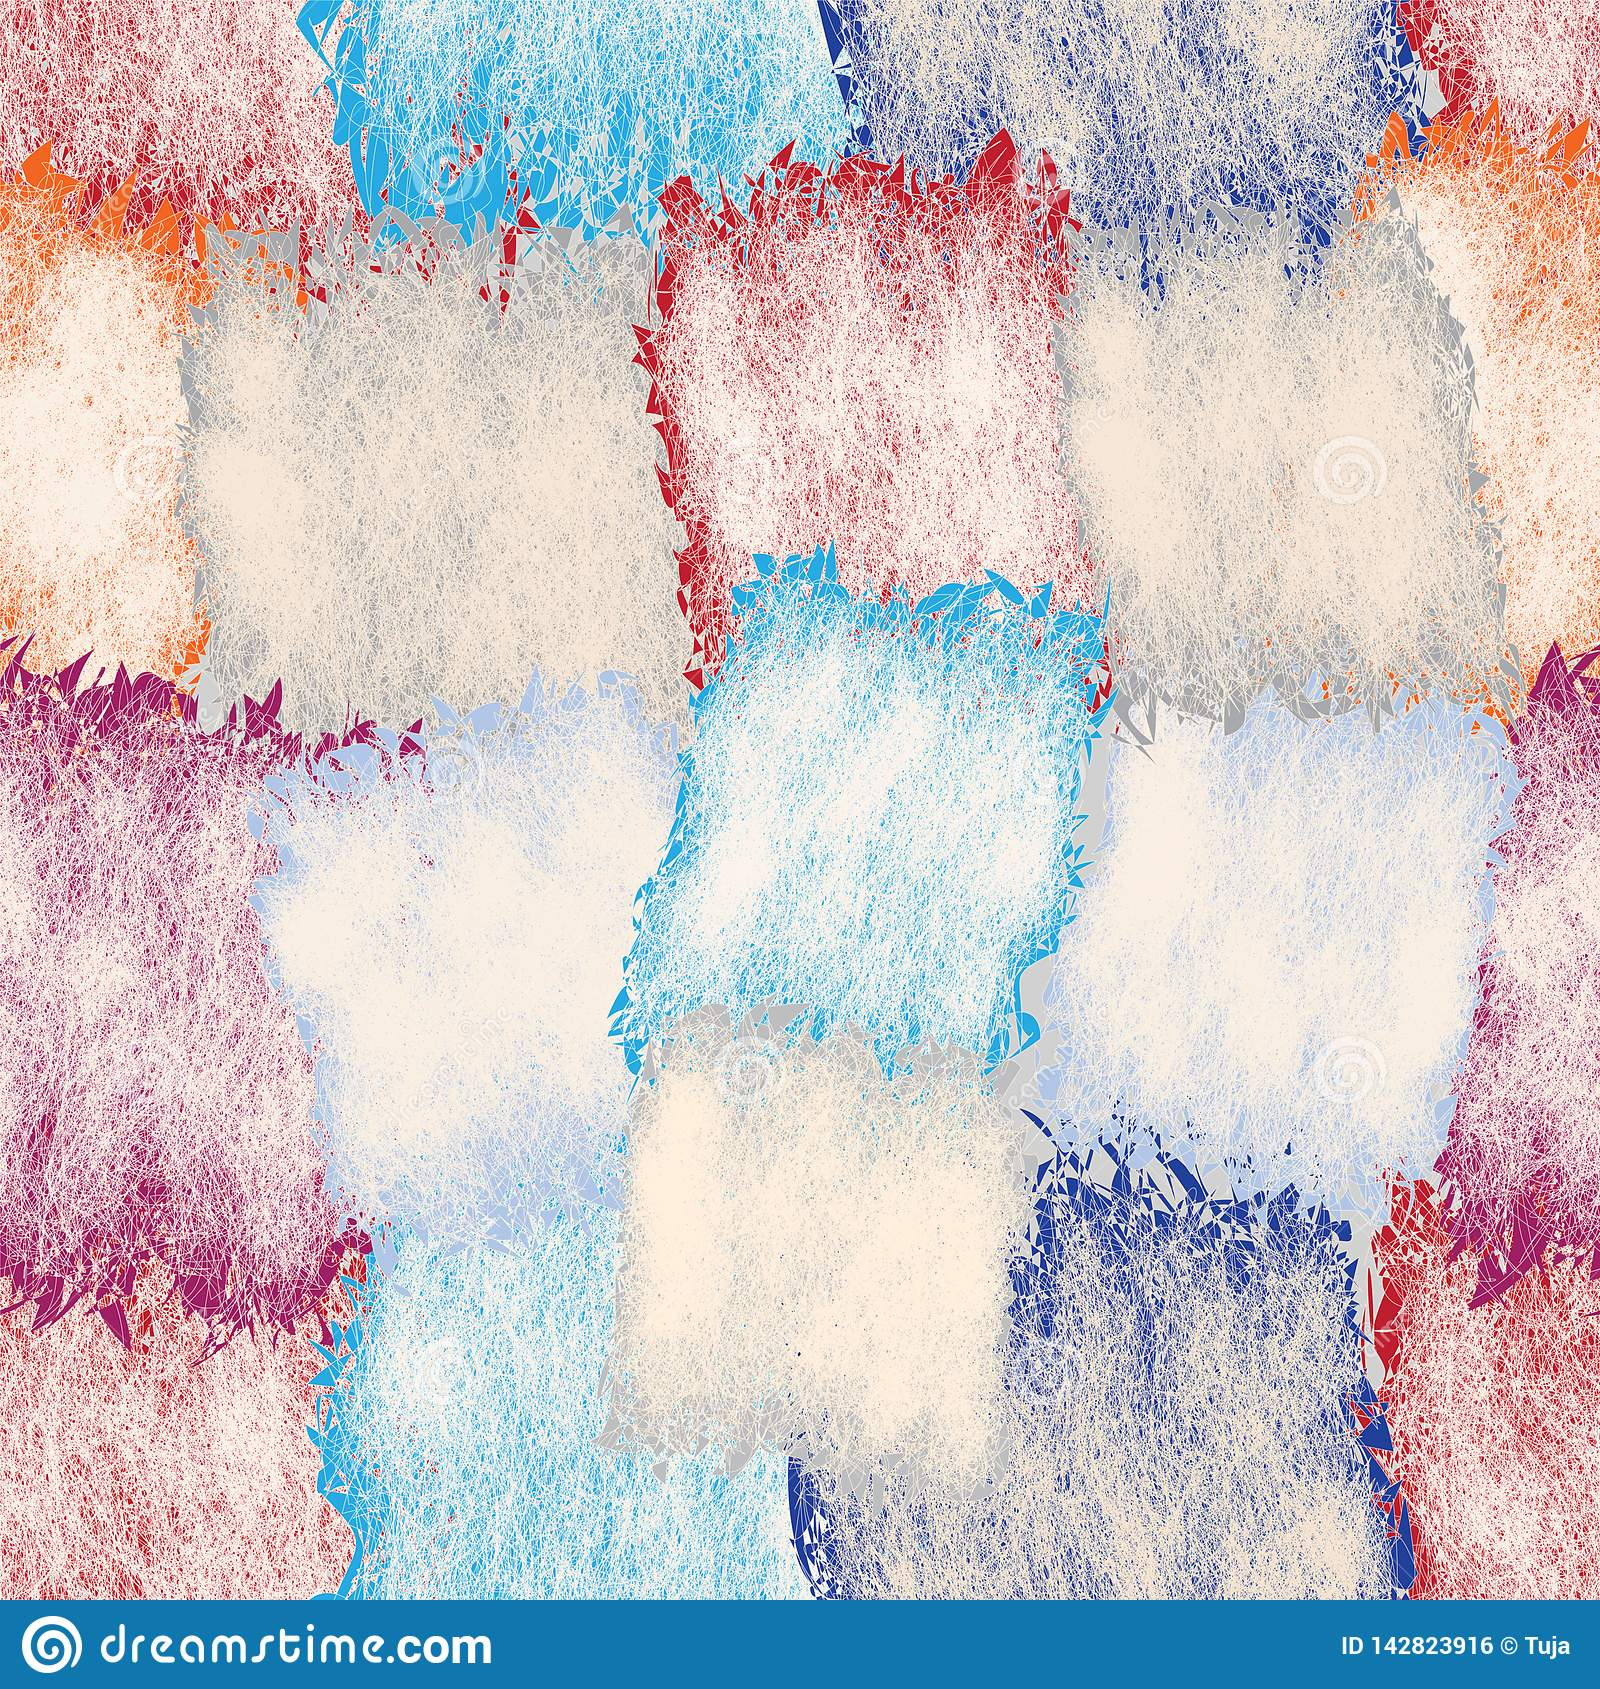 Seamless pattern with grunge stained and striped square elements in pastel colors